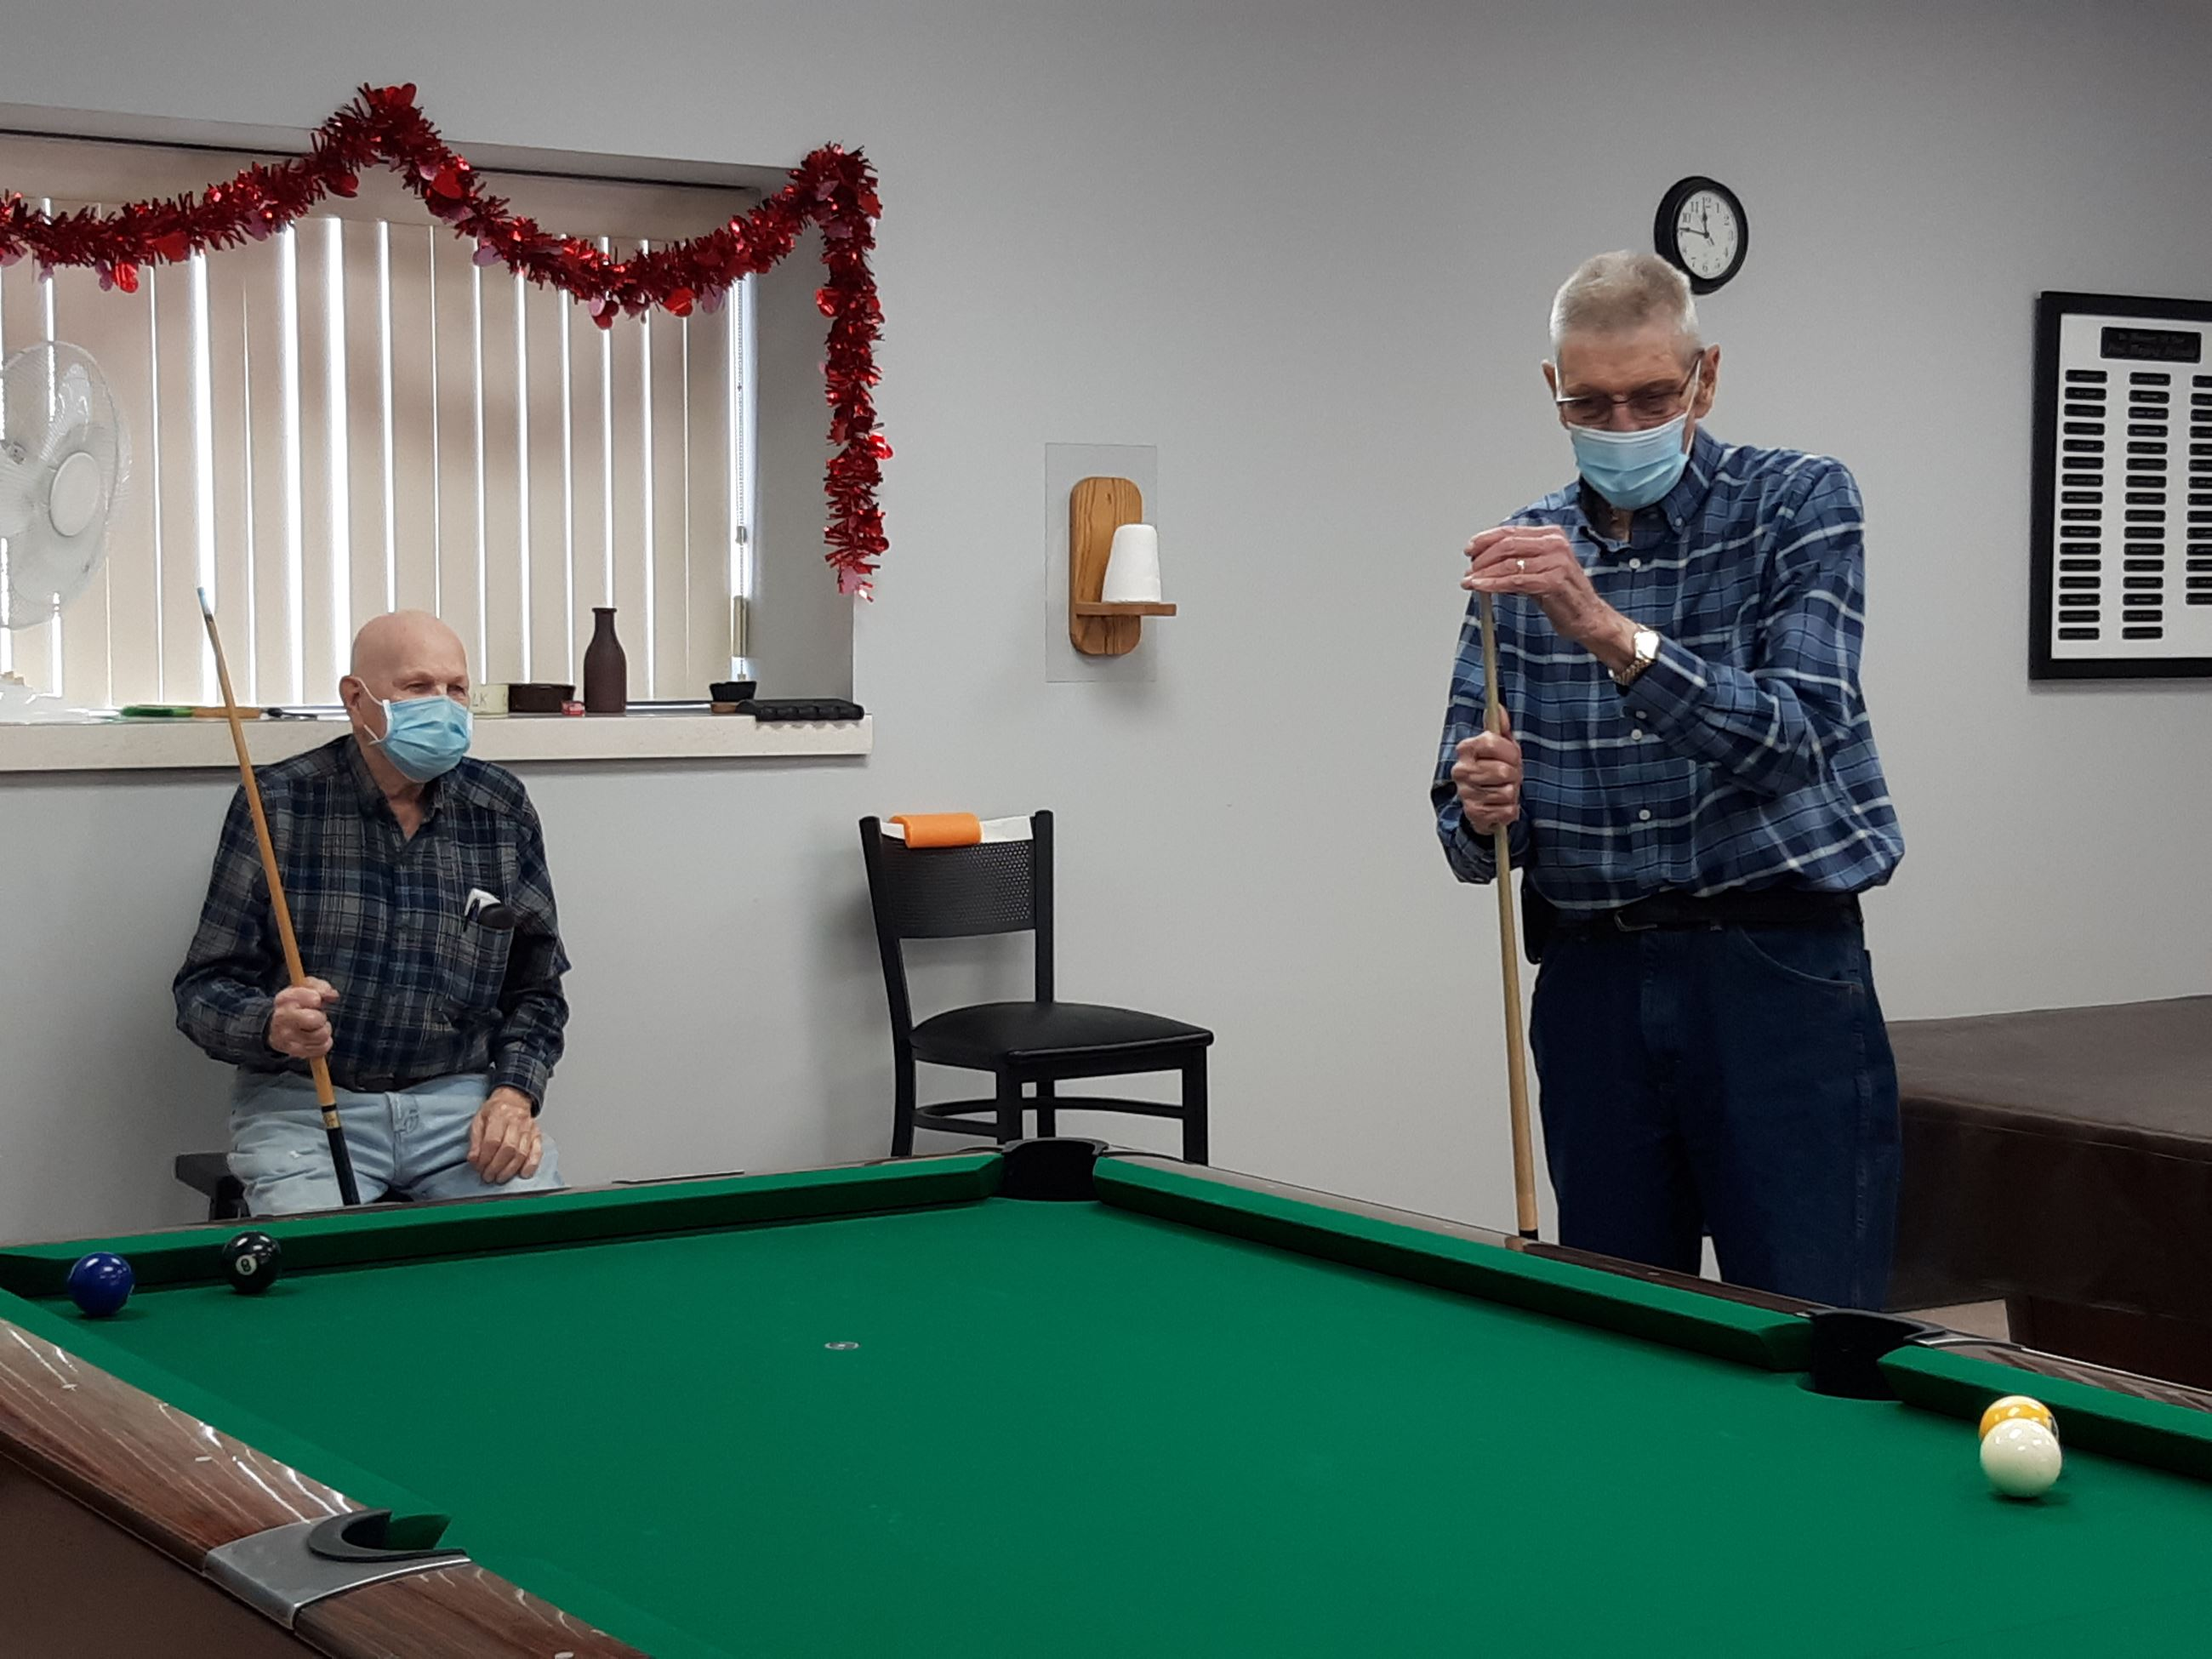 2 guys playing pool